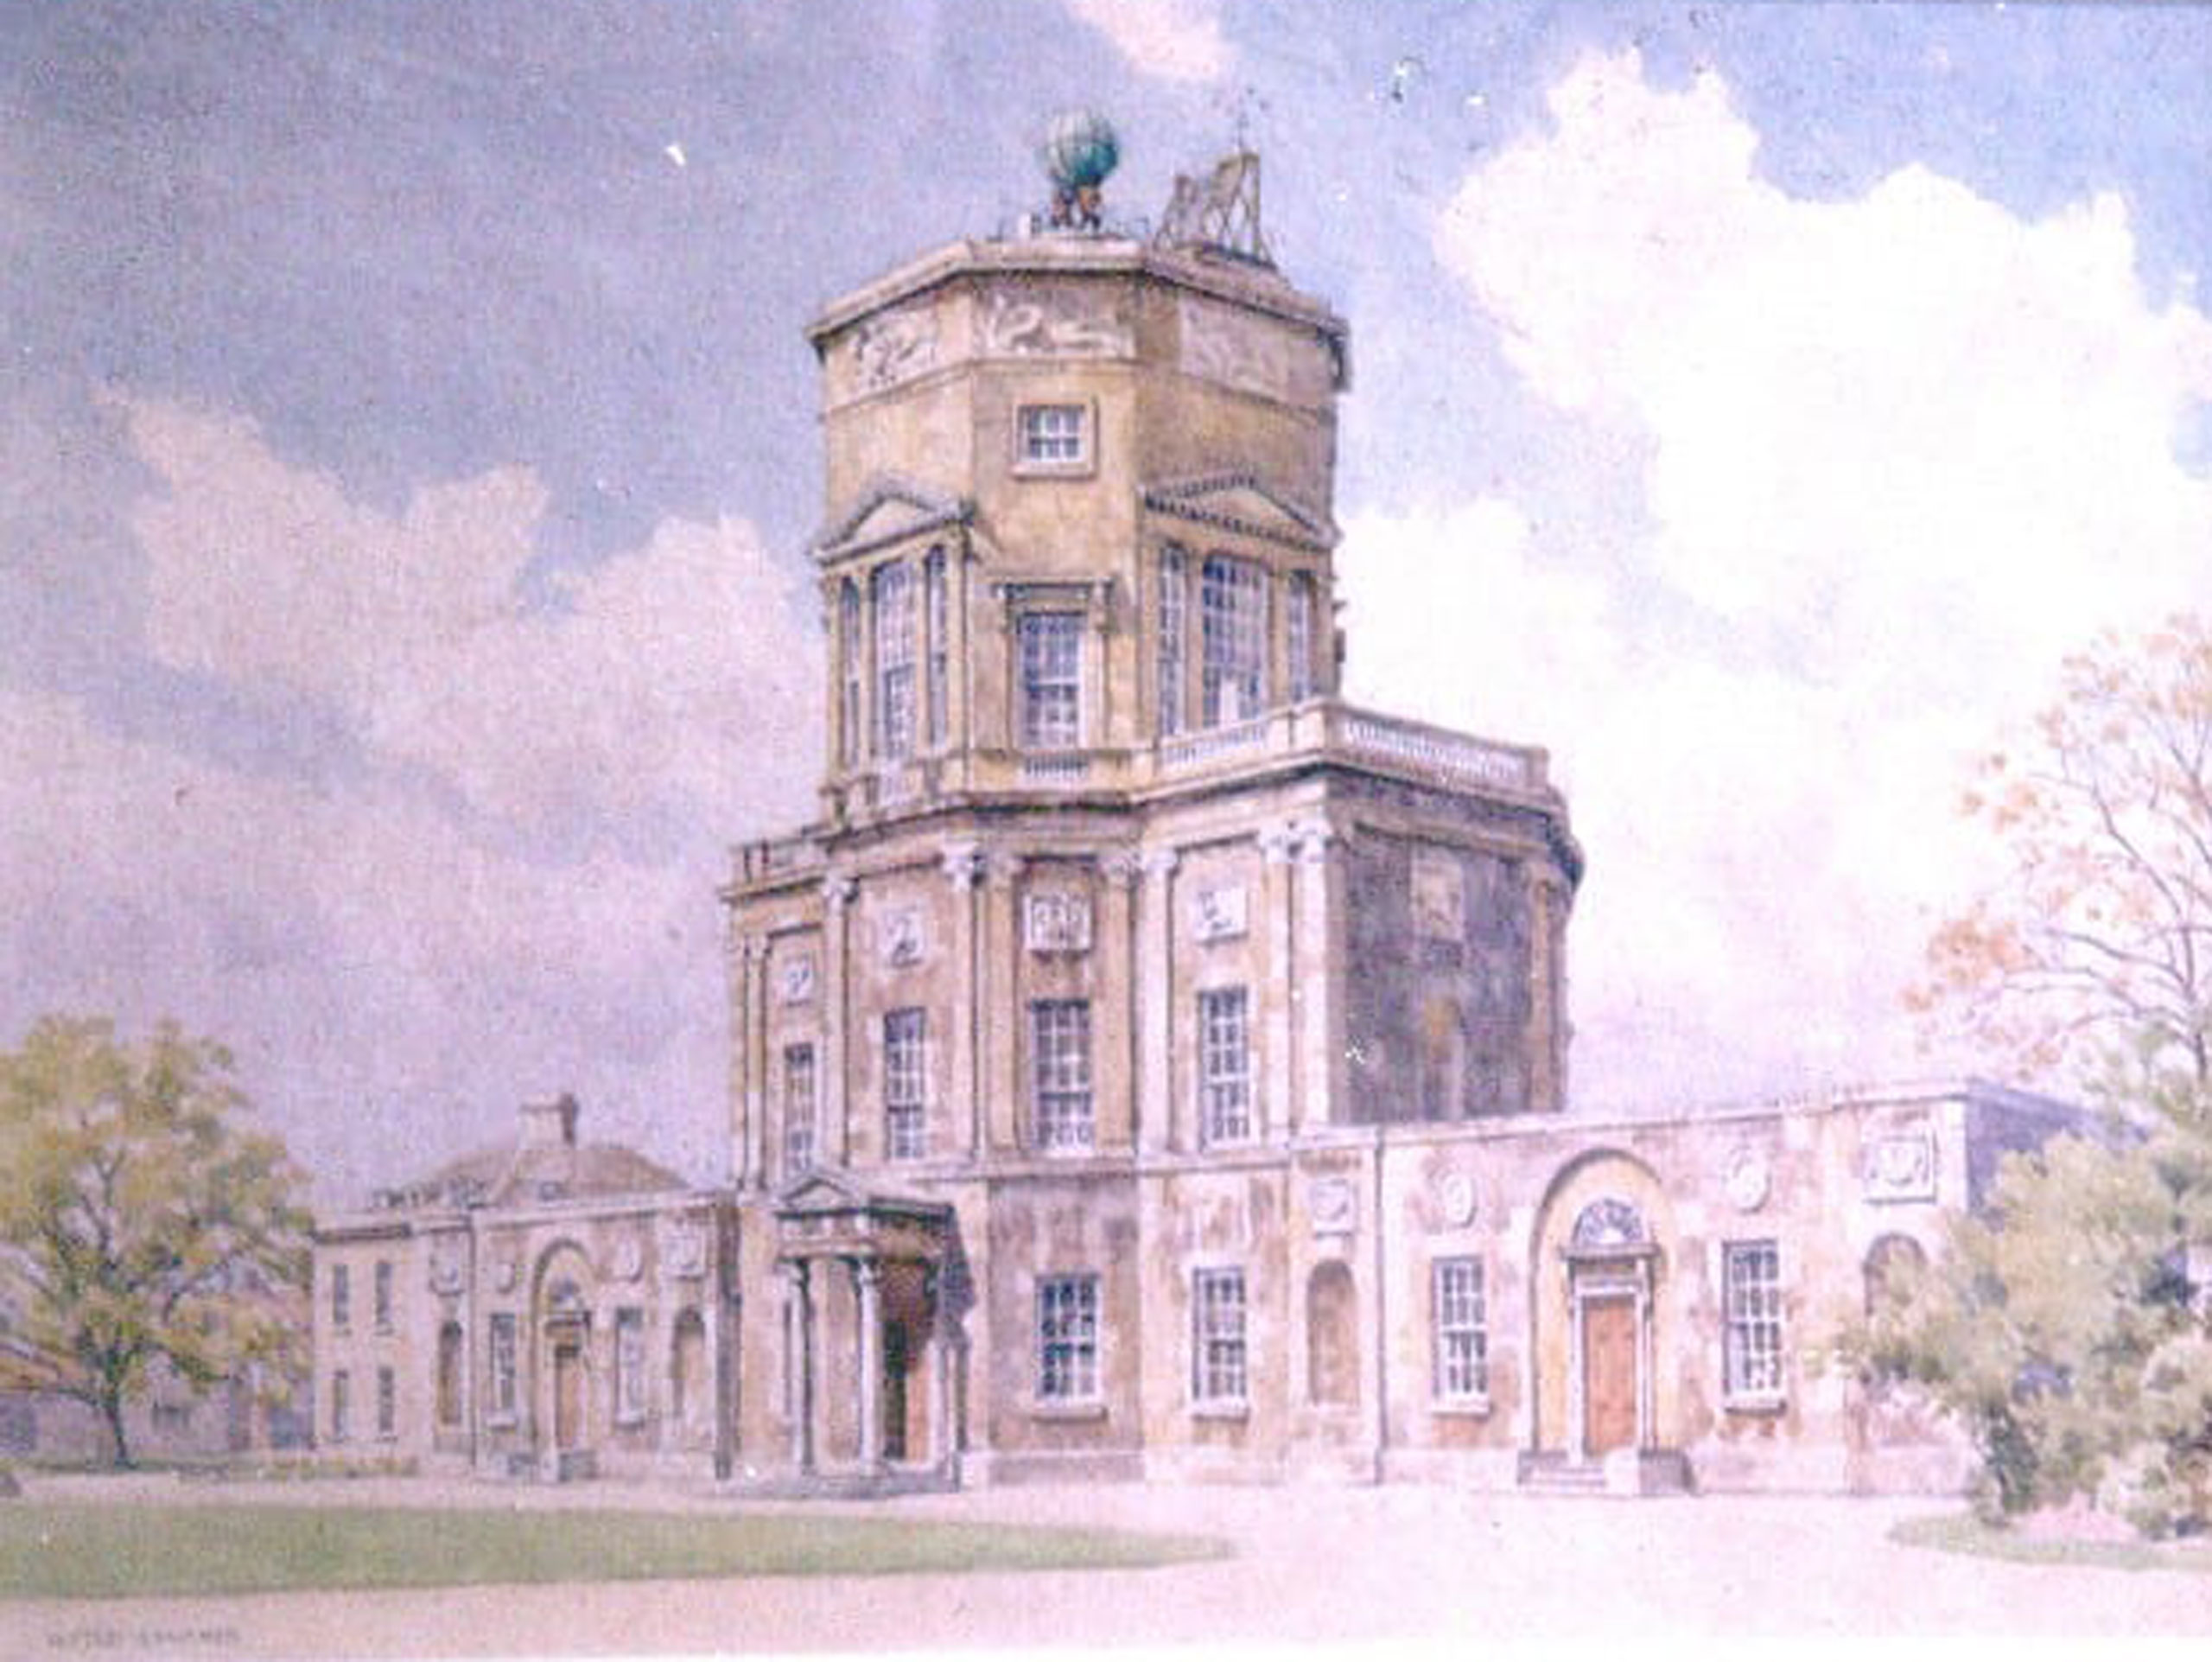 Sketch of the Radcliffe Observatory